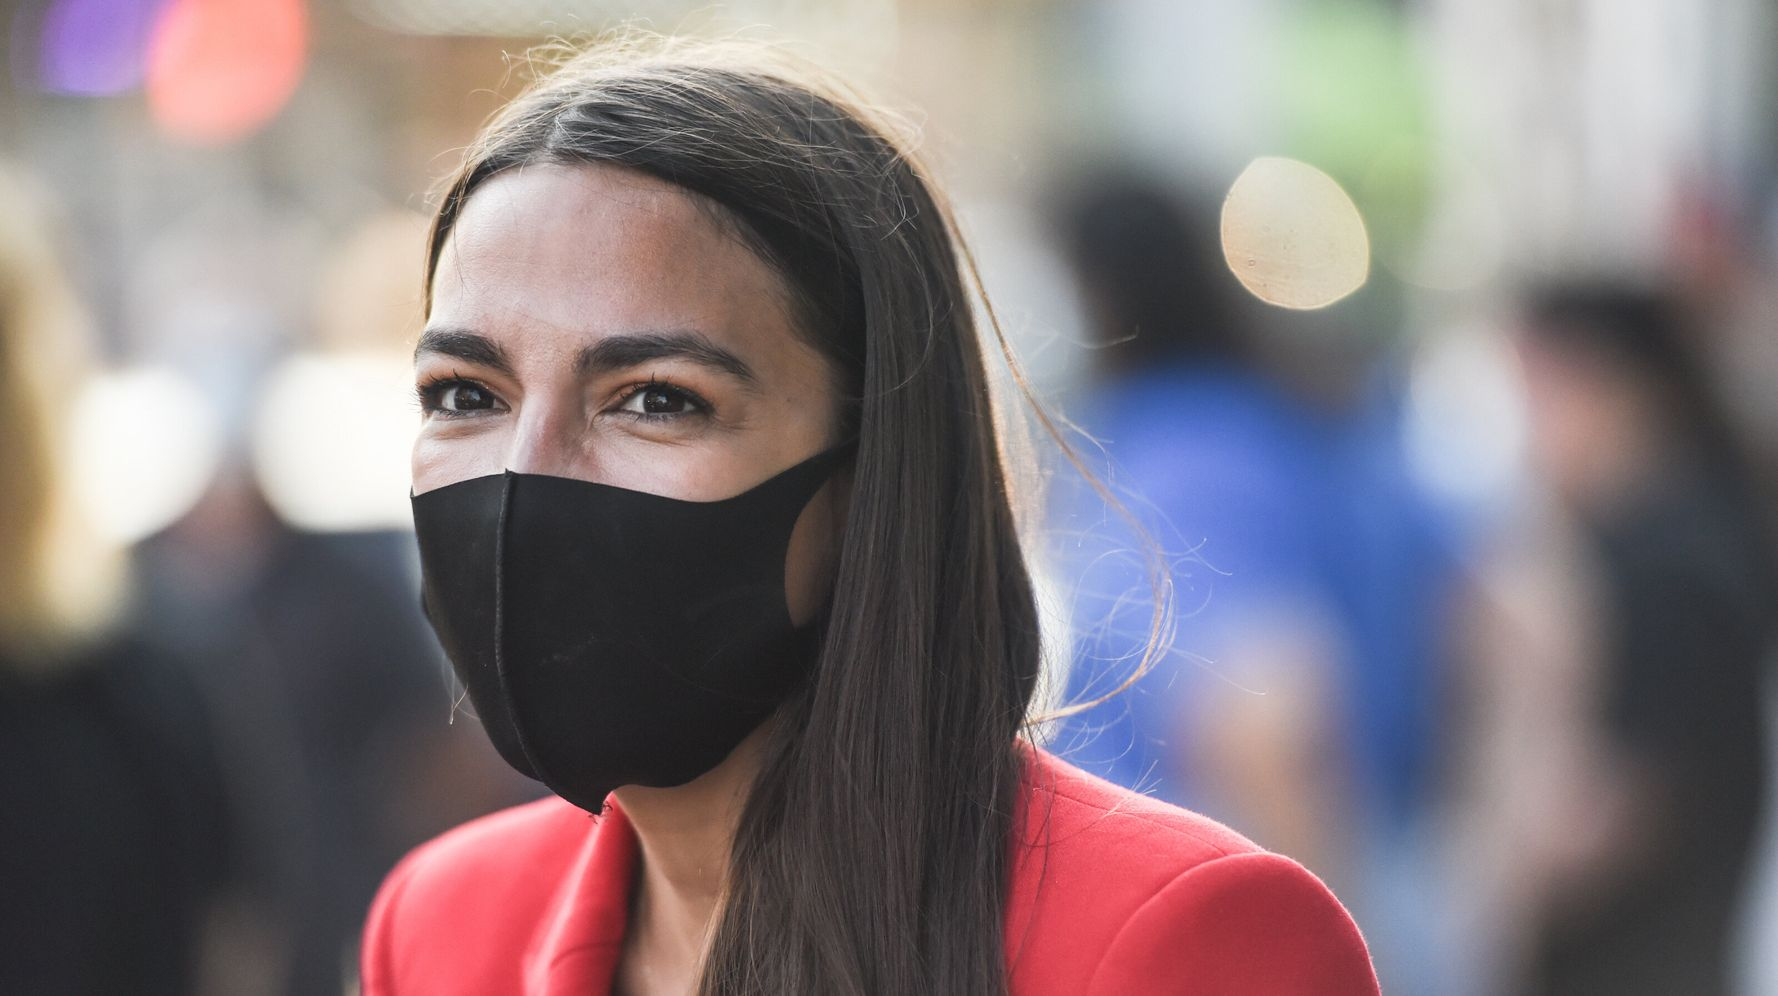 Ocasio-Cortez Delivers Yet Another Takedown After Trump's Rally Insult